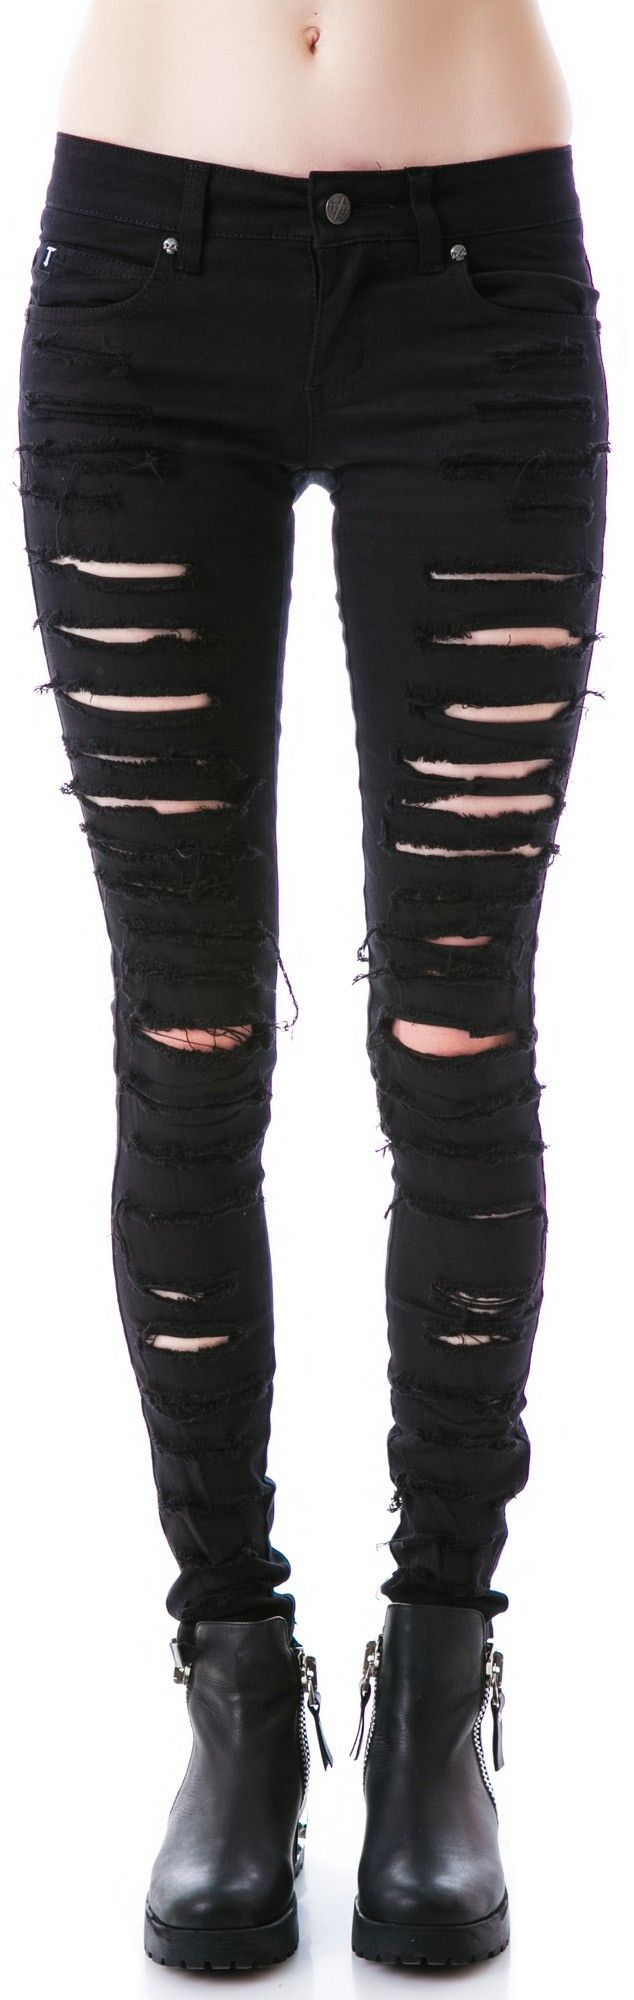 Tripp NYC Cat Fight Pants | Dolls Kill With red fishnets underneath? I think yes!